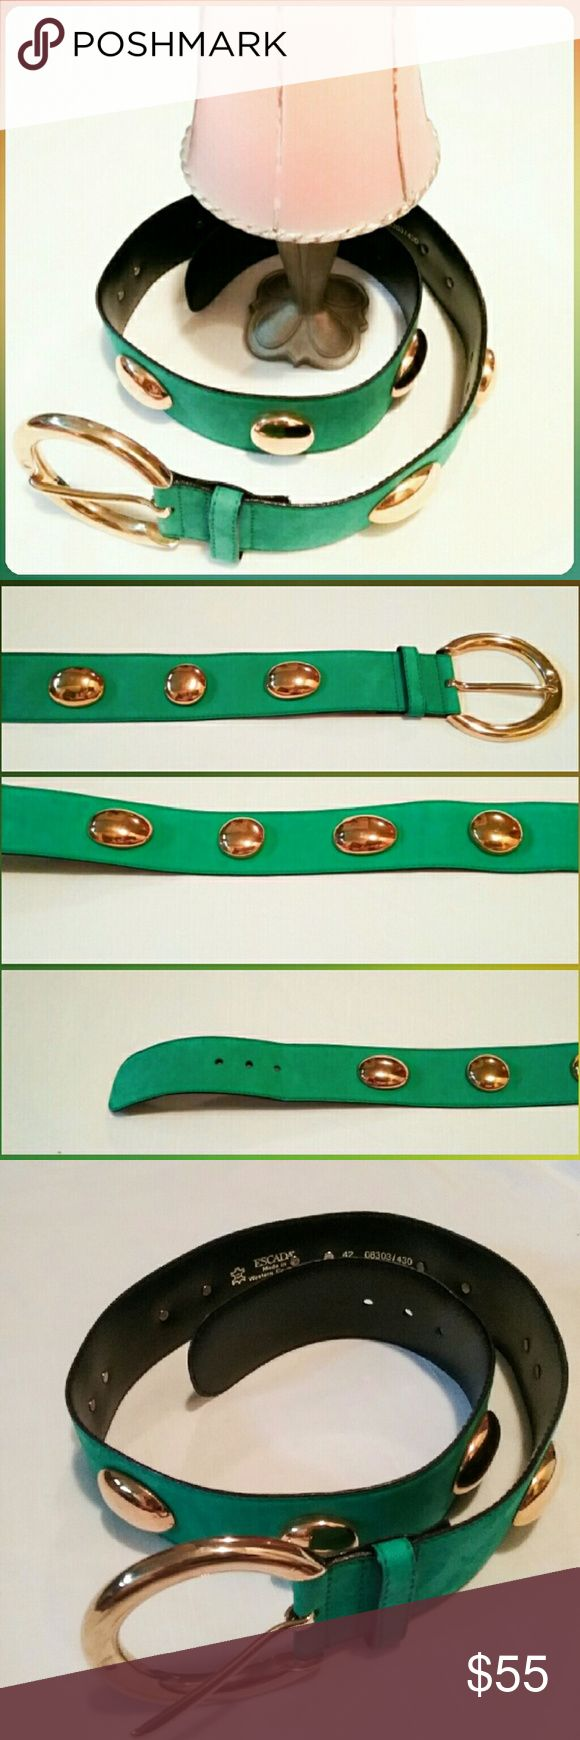 "Vintage Escada Teal Belt with Gold Cabochons This gorgeous vintage Escada belt, circa 1980's, has maintained its glory.  It's in excellent condition.  It measures 36 1/2"" long with the buckle adding another 2 1/2"". The buckle is 3 1/4"" wide, while the belt's with is 2"".  It is 31"" to the first hole & 32 1/2 to the last. The size is 42 (EU) equivalent to US size 10. Escada Accessories Belts"